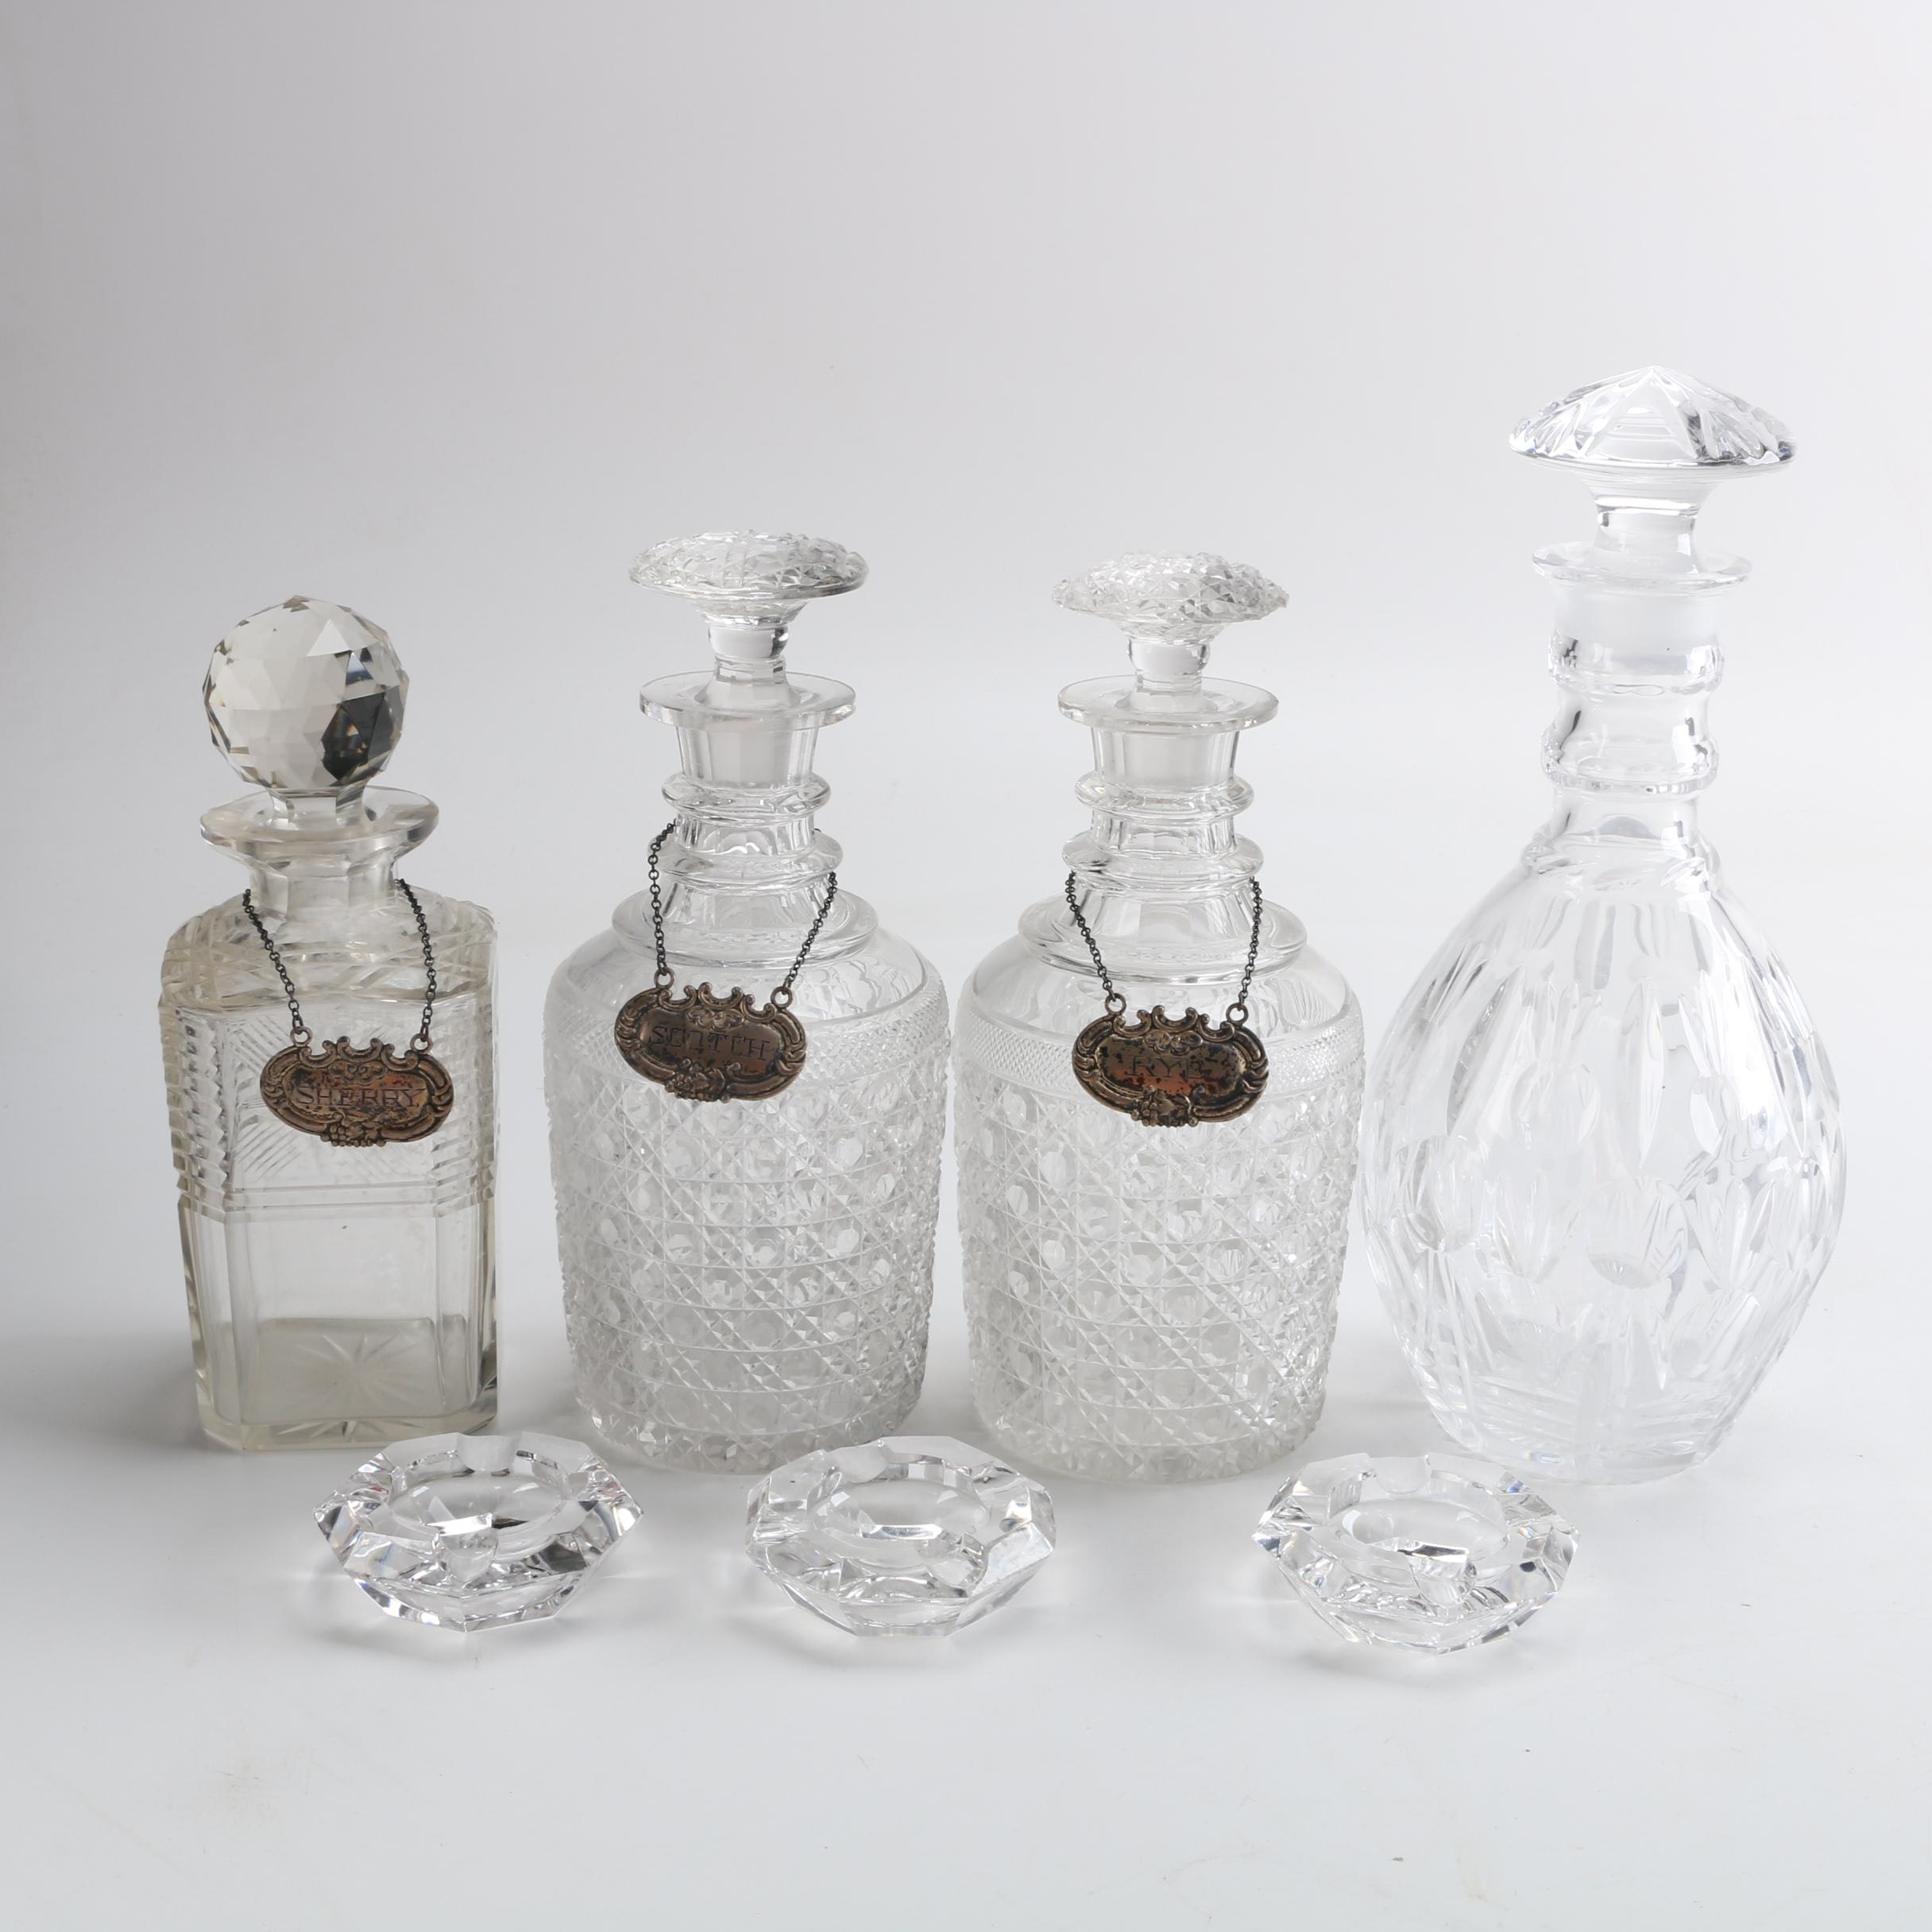 Sterling Silver Decanter Labels with Crystal Decanters and Ashtrays